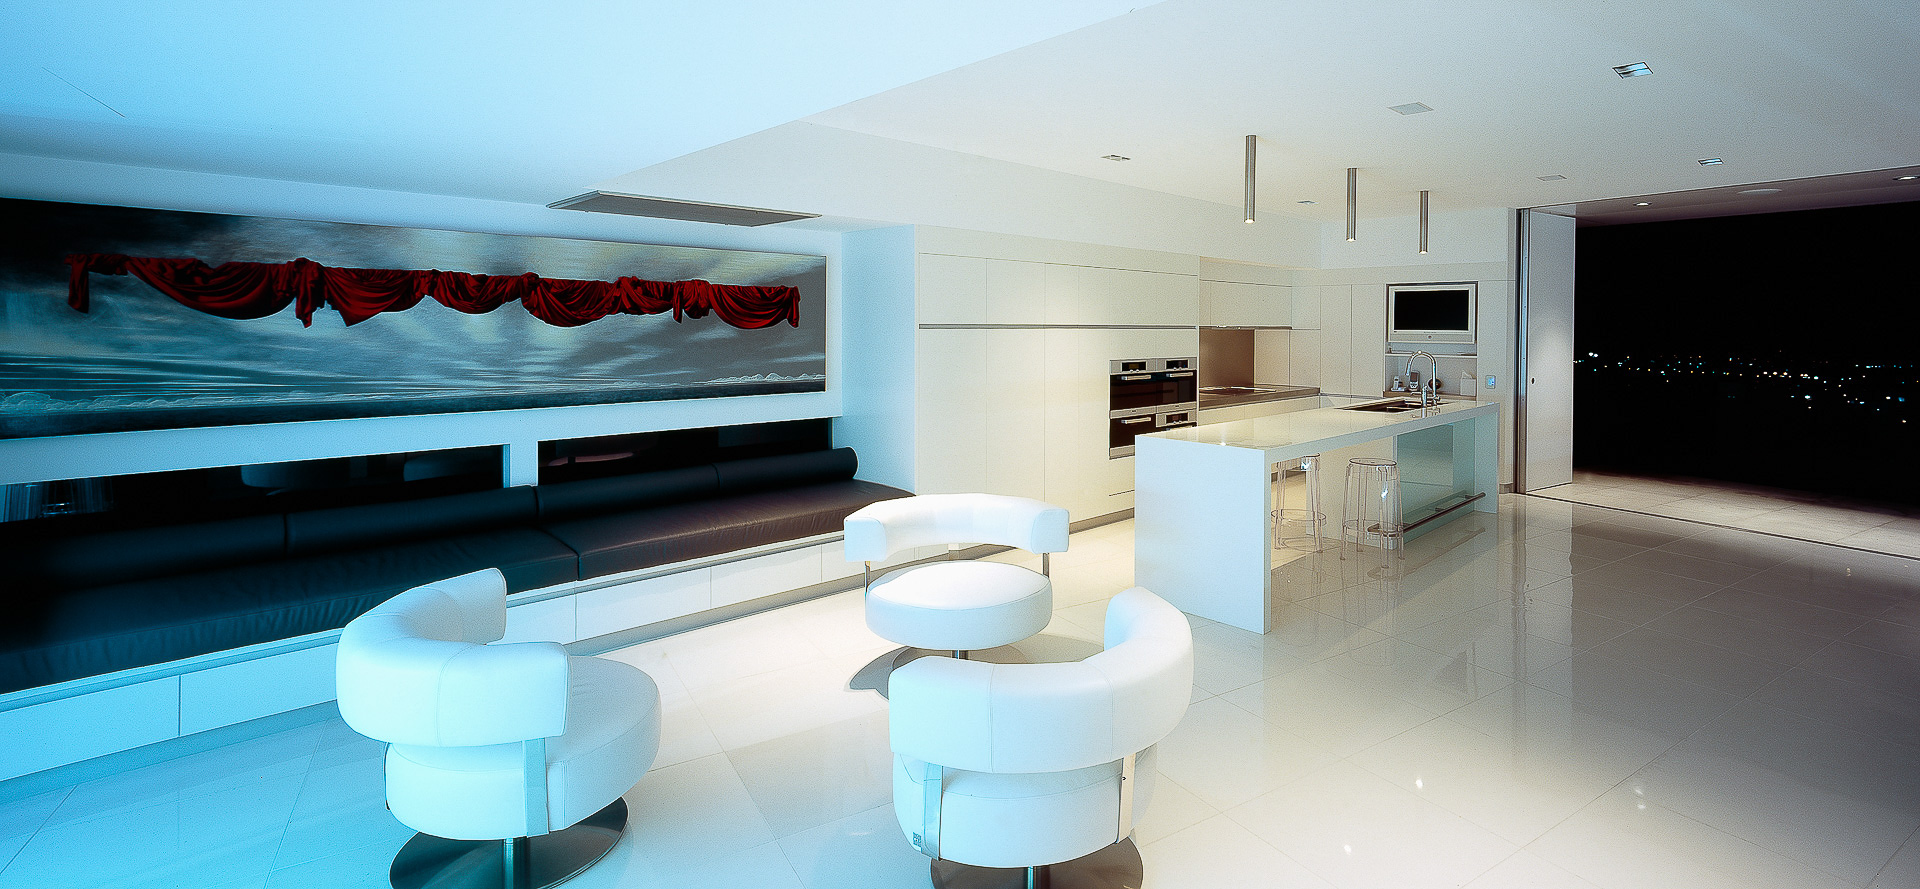 White kitchen, sleek, chic interiors, corian, glacier white, luxury kitchen, ultramodern kitchen, minimal kitchen, minka joinery